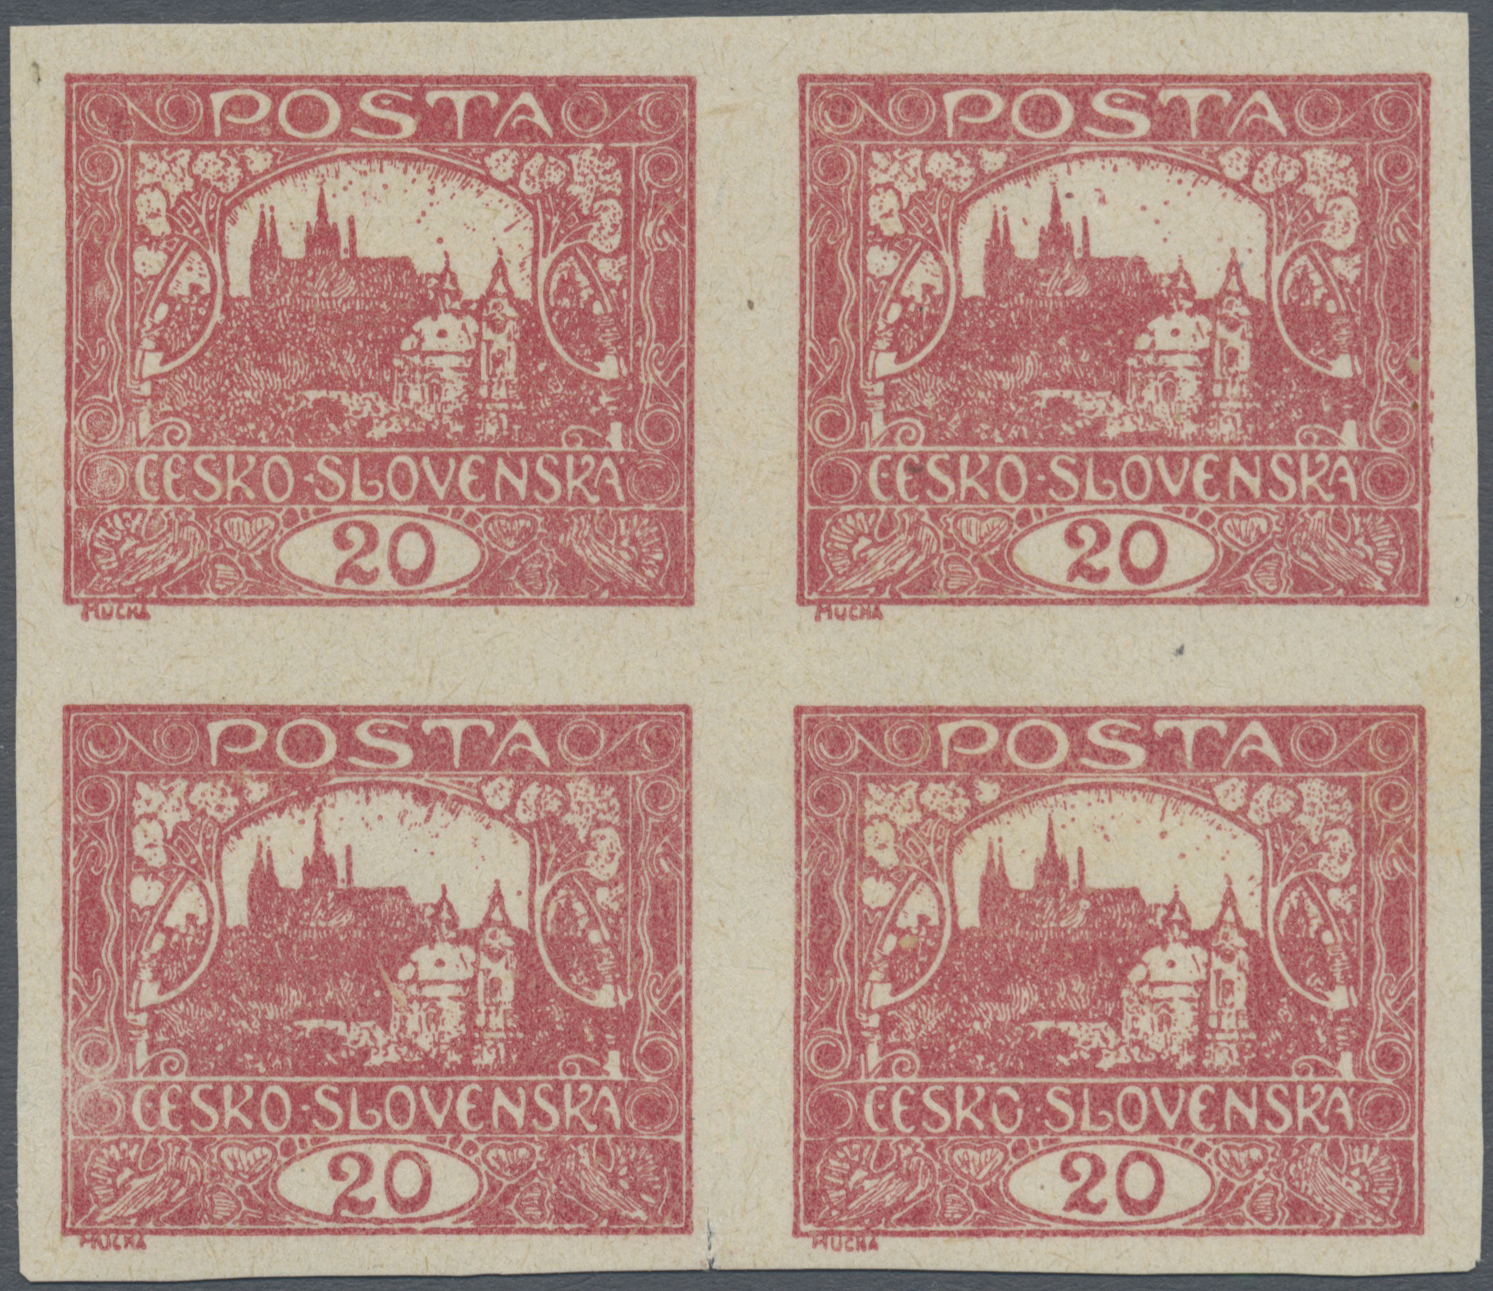 Lot 1708 - tschechoslowakei  -  Auktionshaus Christoph Gärtner GmbH & Co. KG Auction #41 Special auction part two